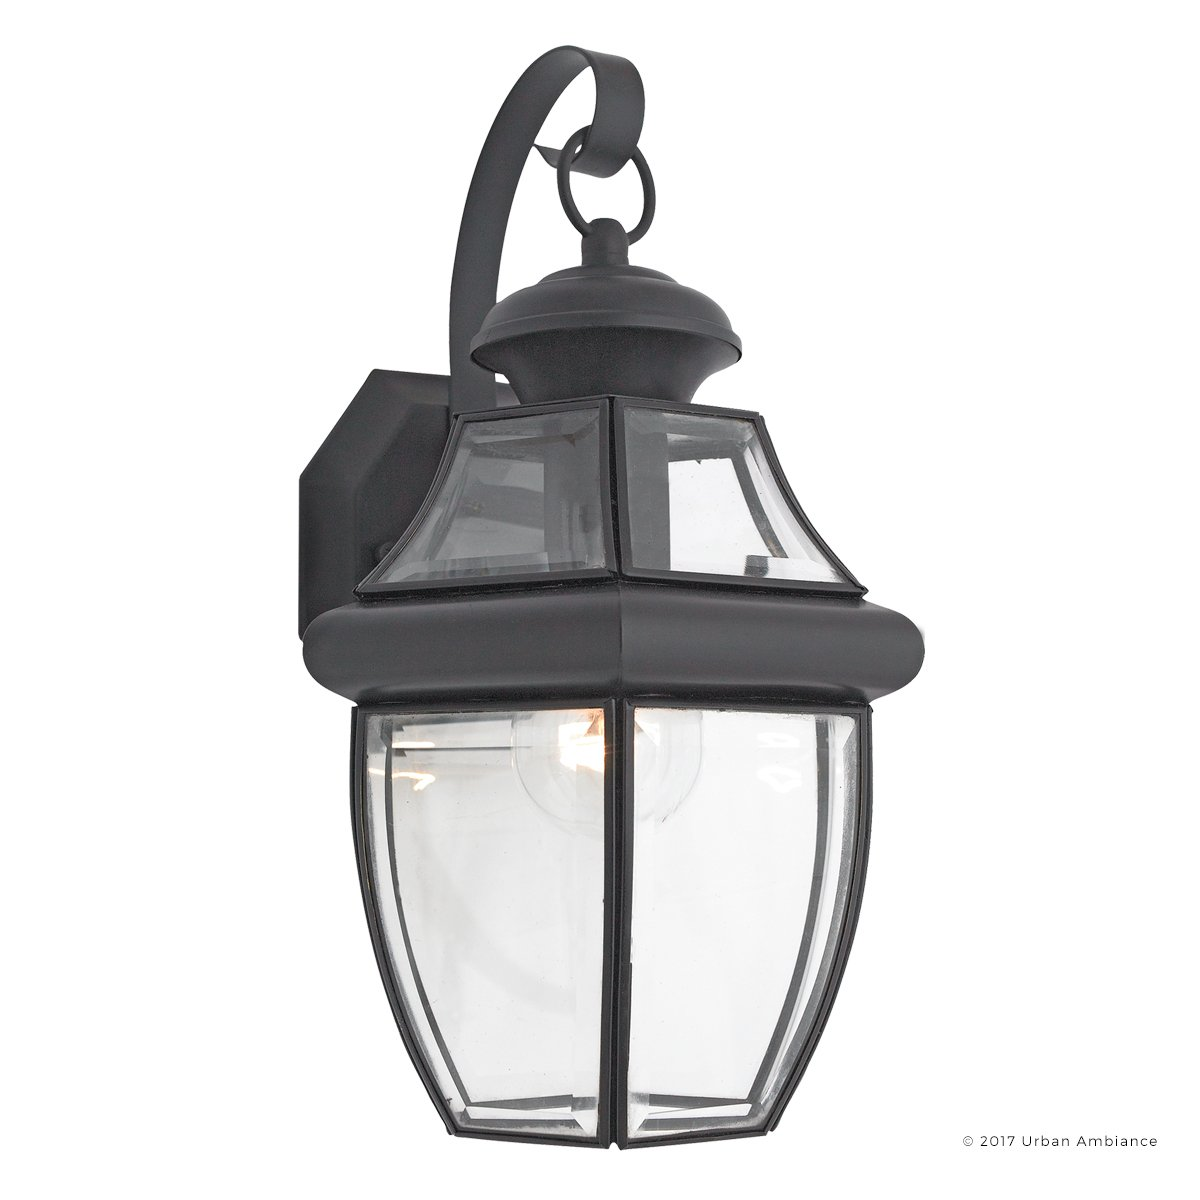 Luxury Colonial Outdoor Wall Light, Medium Size: 14''H x 8''W, with Tudor Style Elements, Versatile Design, High-End Black Silk Finish and Beveled Glass, UQL1142 by Urban Ambiance